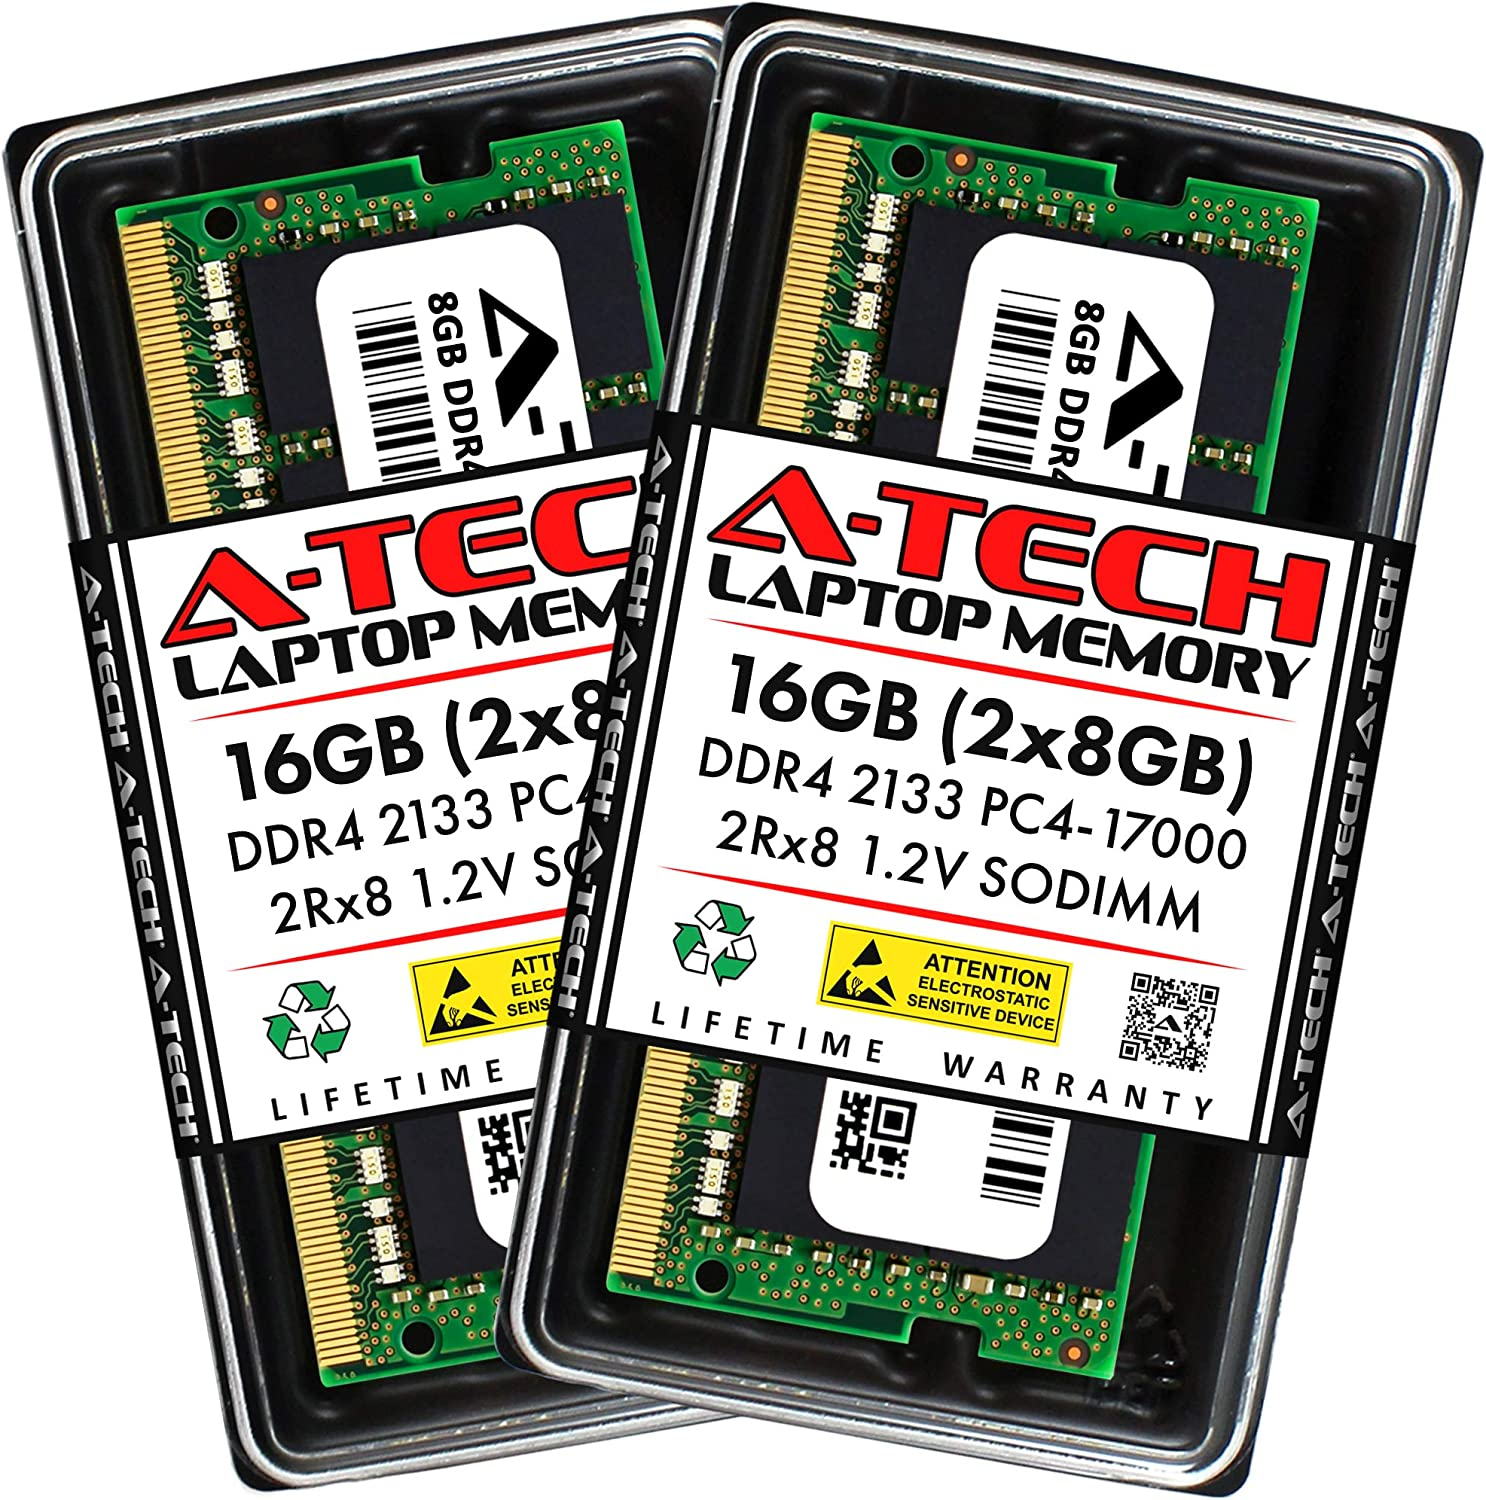 A-Tech 16GB (2x8GB) DDR4 2133MHz SODIMM PC4-17000 2Rx8 Dual Rank 260-Pin CL15 1.2V Non-ECC Unbuffered Notebook Laptop RAM Memory Upgrade Kit